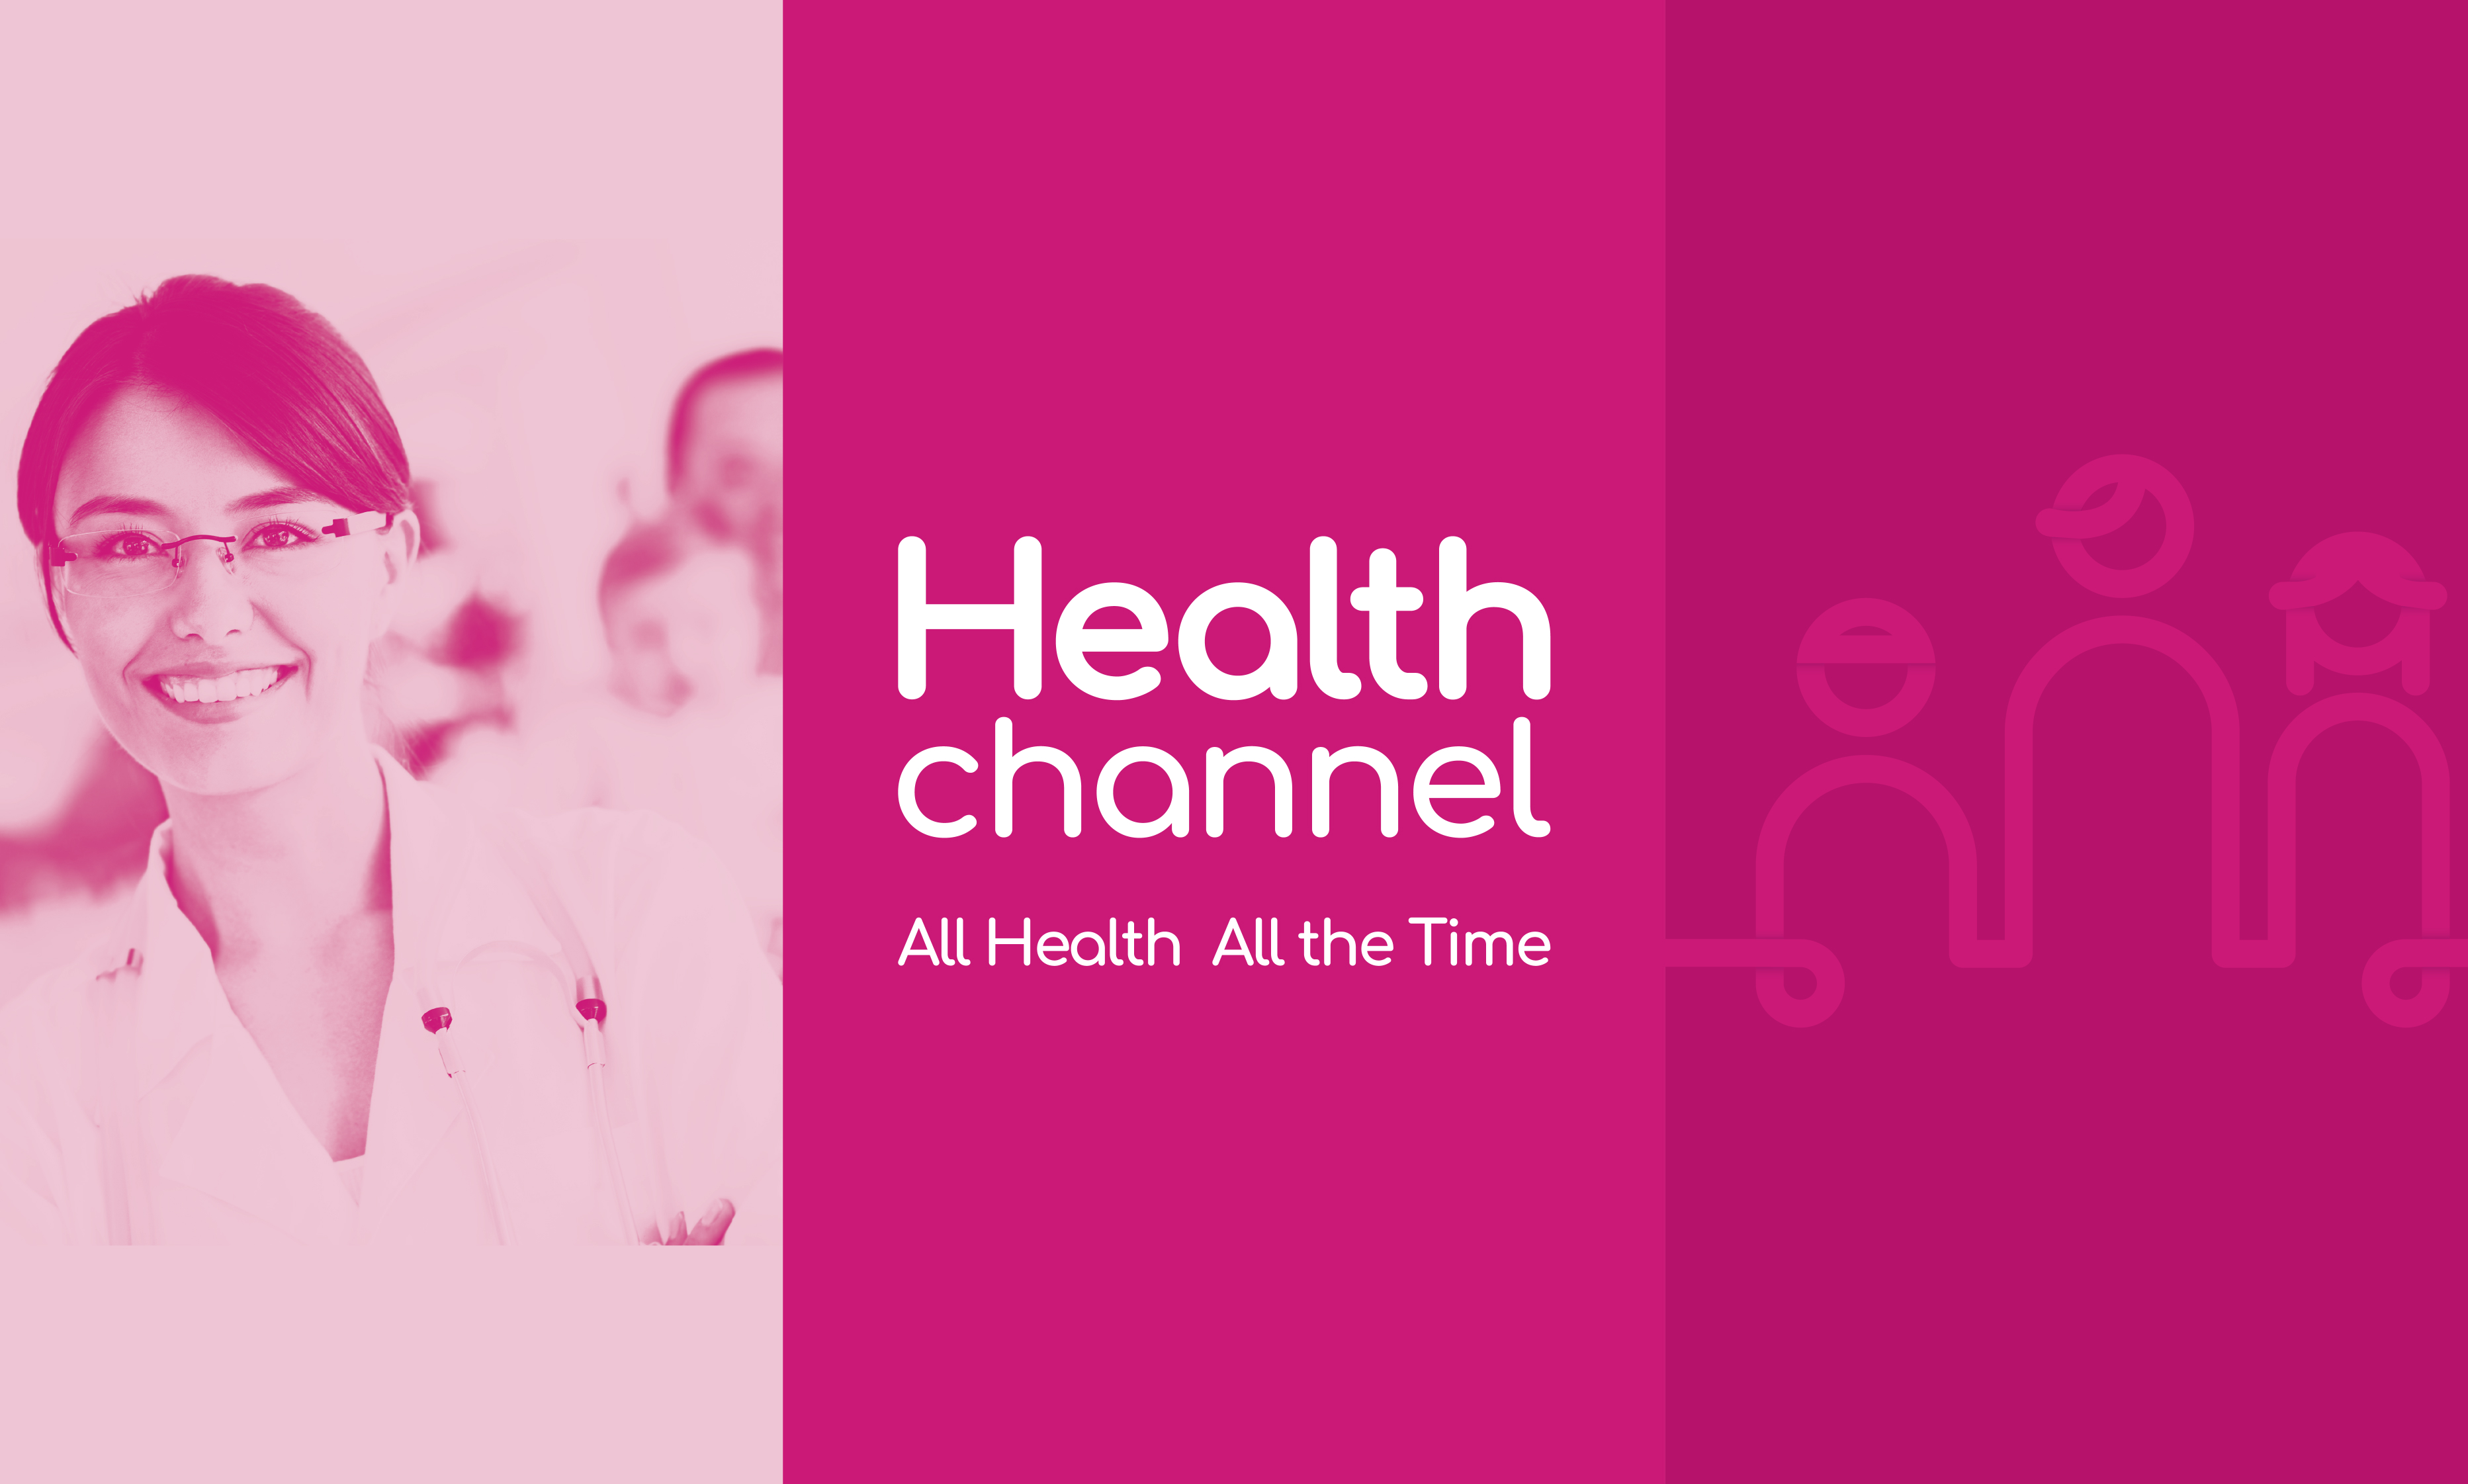 The Health Channel